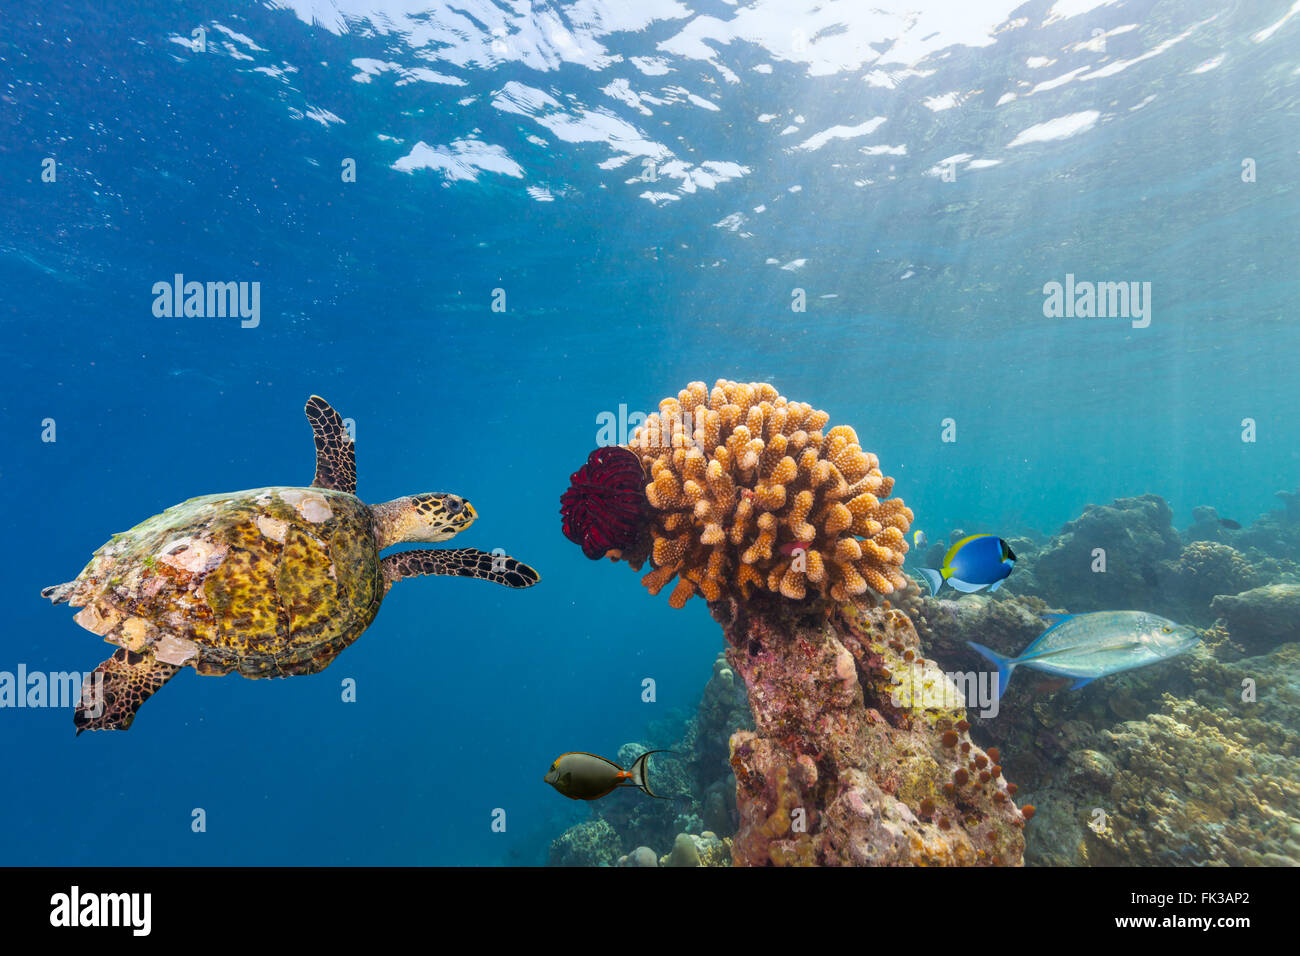 Coral reef with turtle - Stock Image